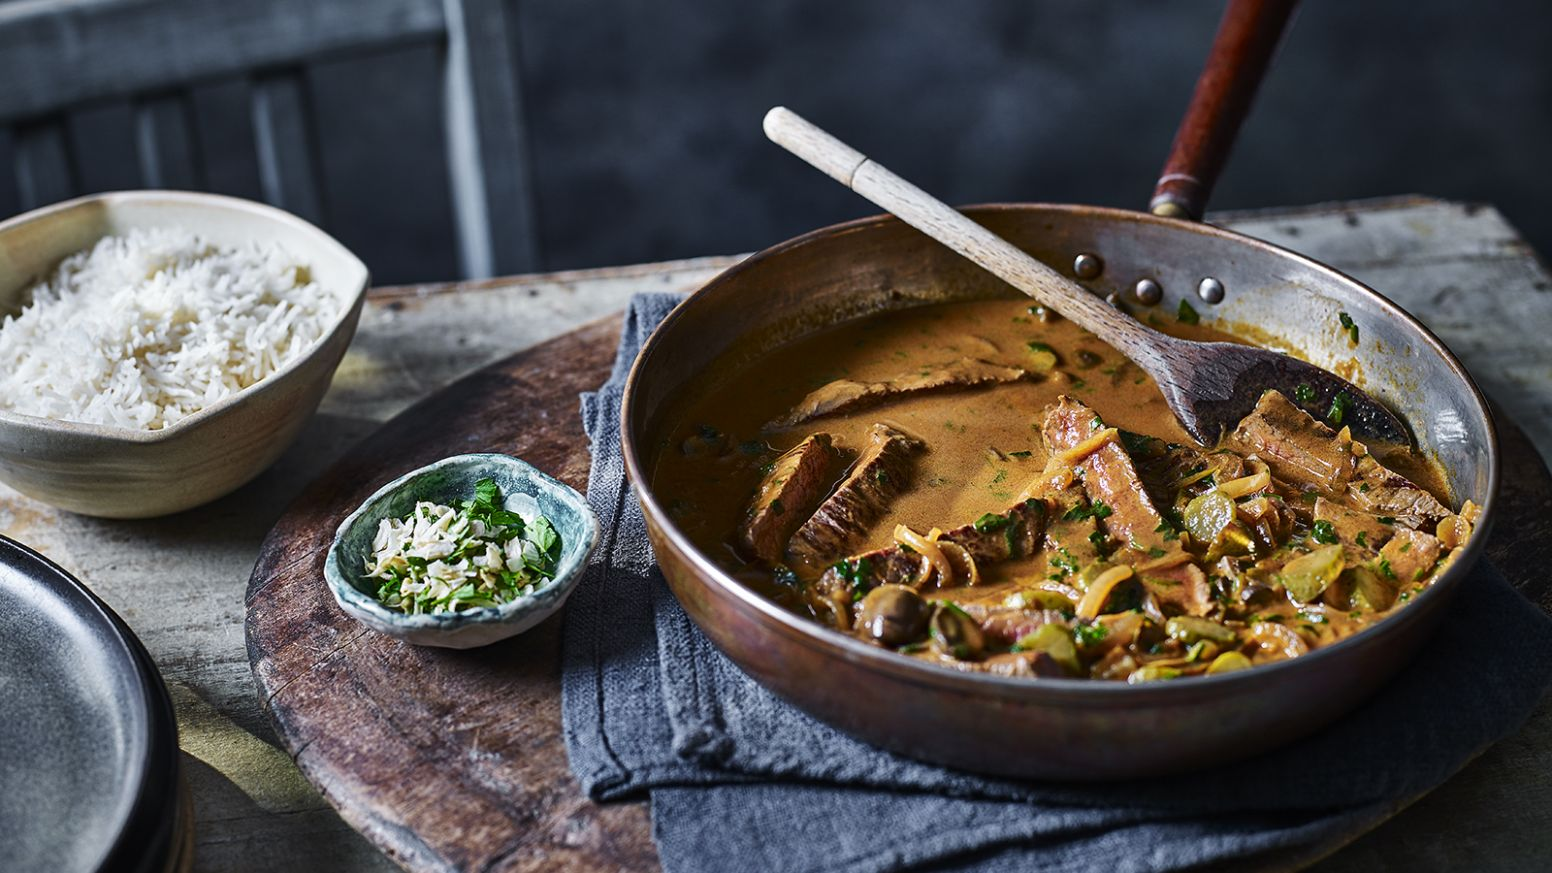 Tom Kerridge's beef stroganoff